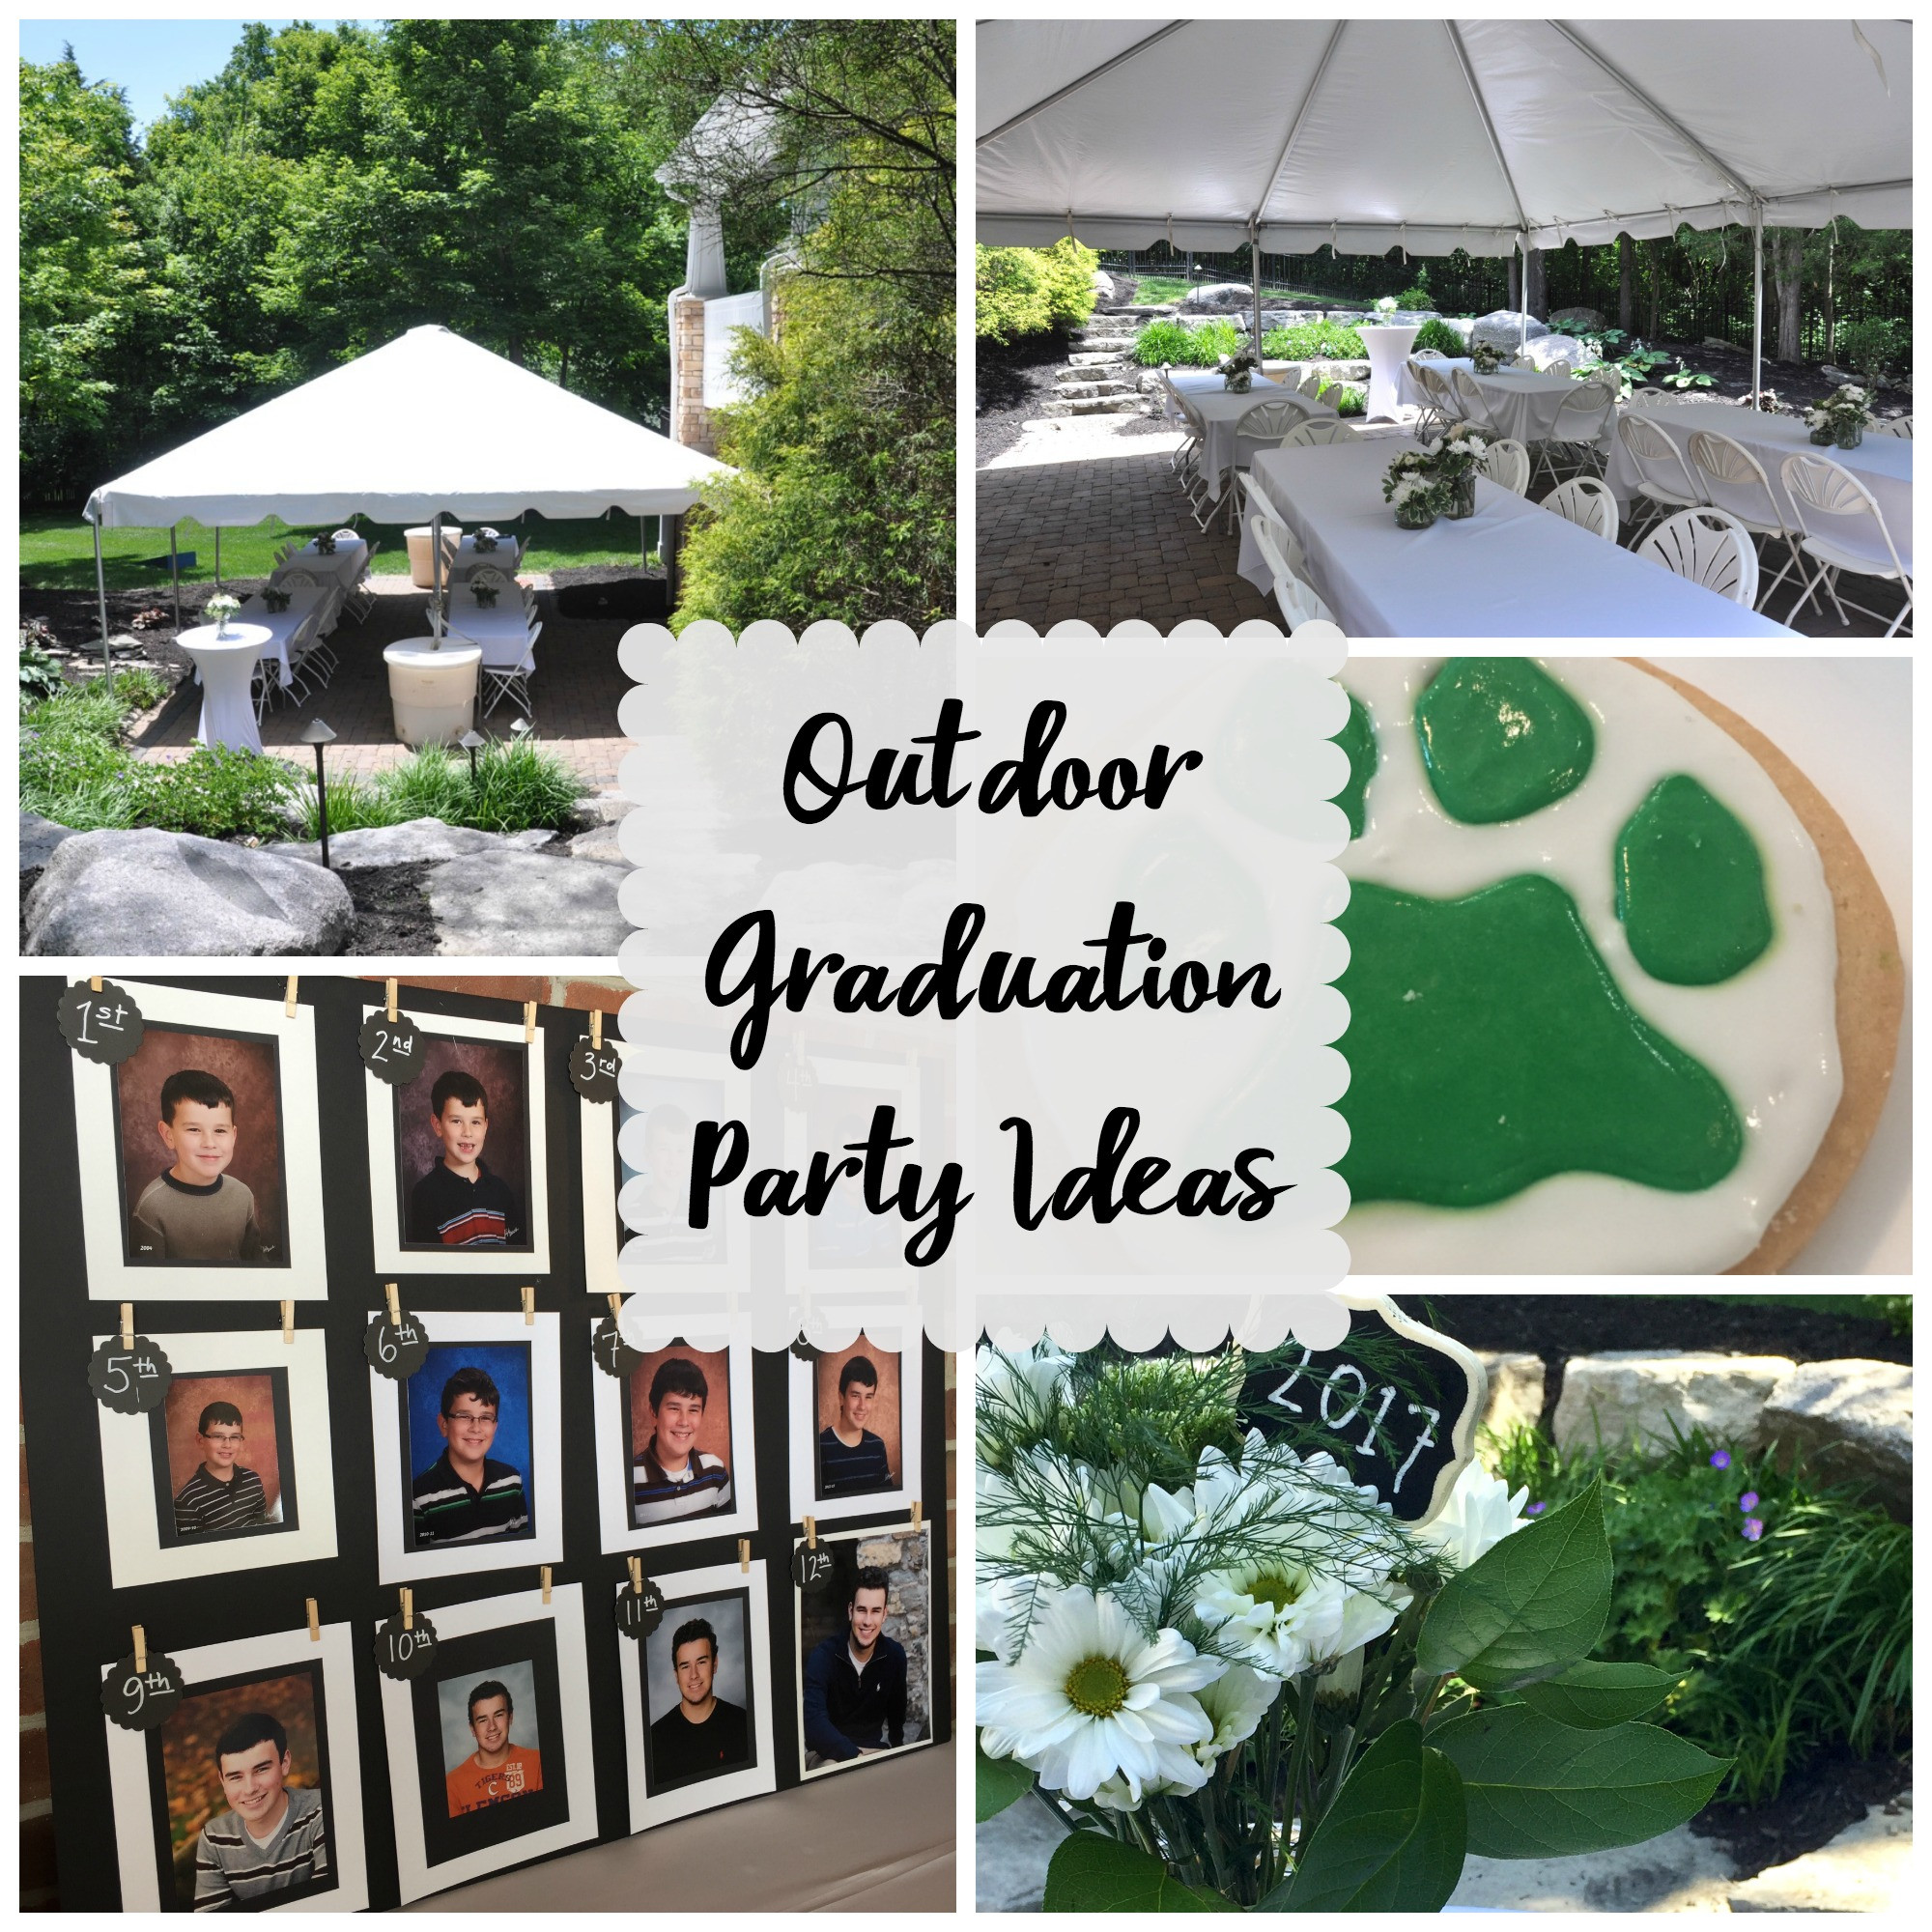 Graduation Party Ideas For Backyard  Outdoor Graduation Party Evolution of Style